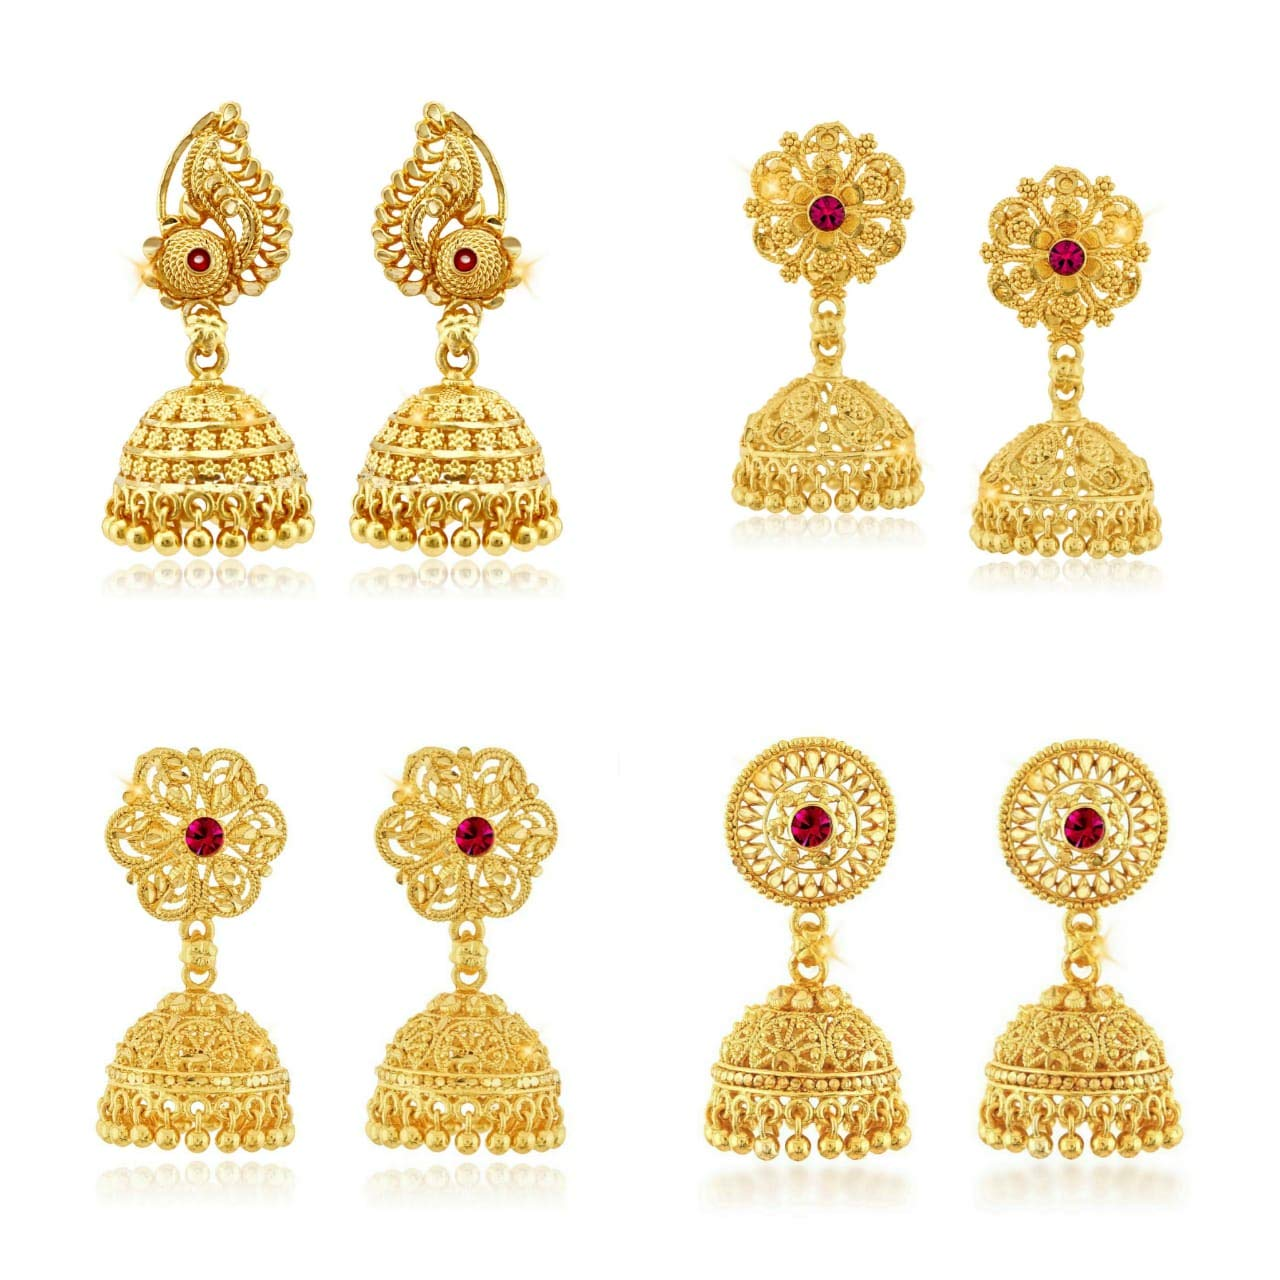 Gold Plated alloy Jhumki Earring Combo set for Women and Girls – (Pack of- 4 Pair Jhumka)